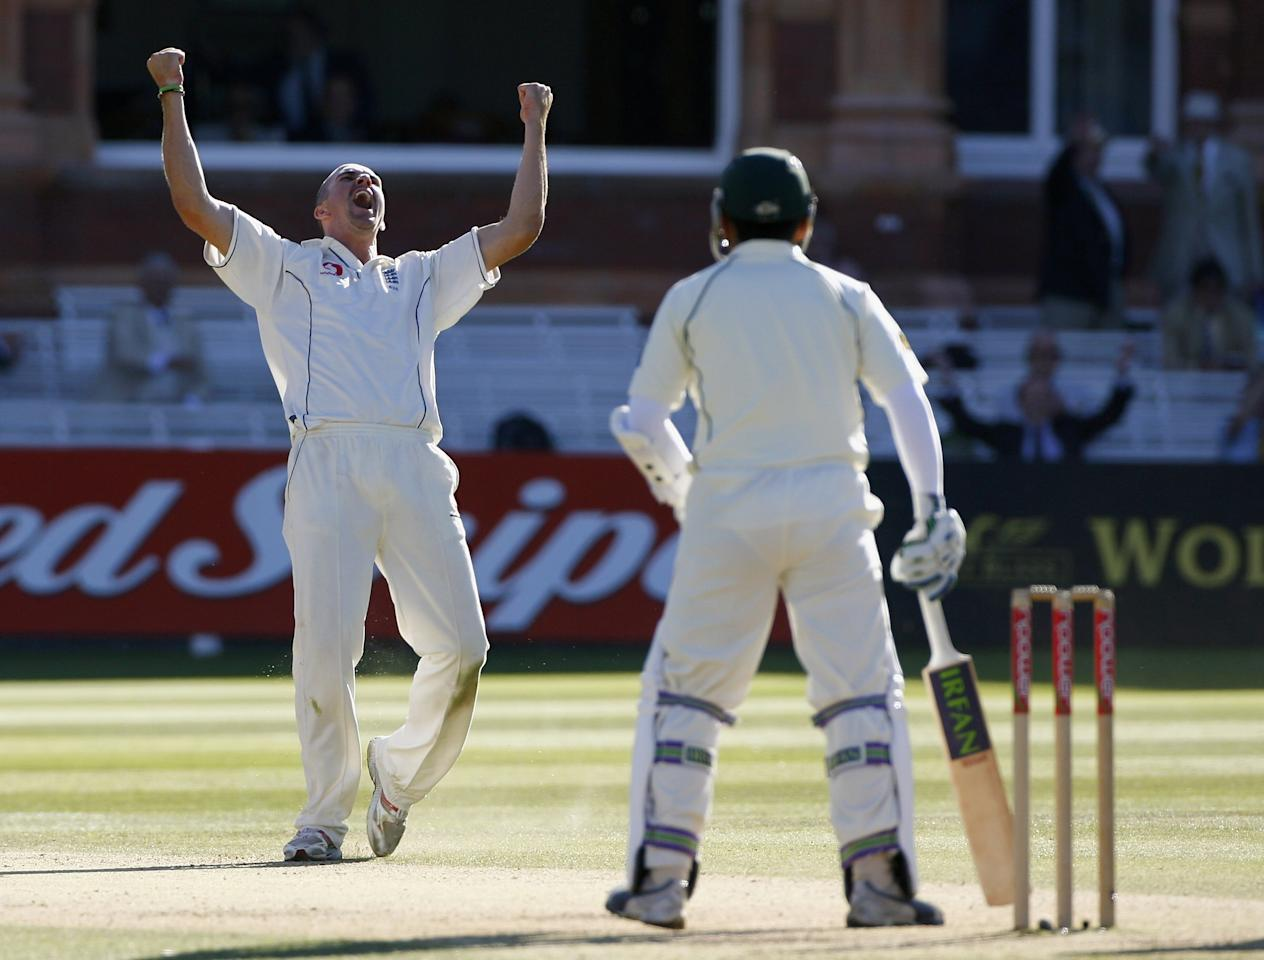 LONDON - JULY 15:  Kevin Pietersen of England celebrates the wicket of Kamran Akmal of Pakistan during day three of the first npower test match between England and Pakistan at Lord's on July 15, 2006 in London, England.  (Photo by Tom Shaw/Getty Images)